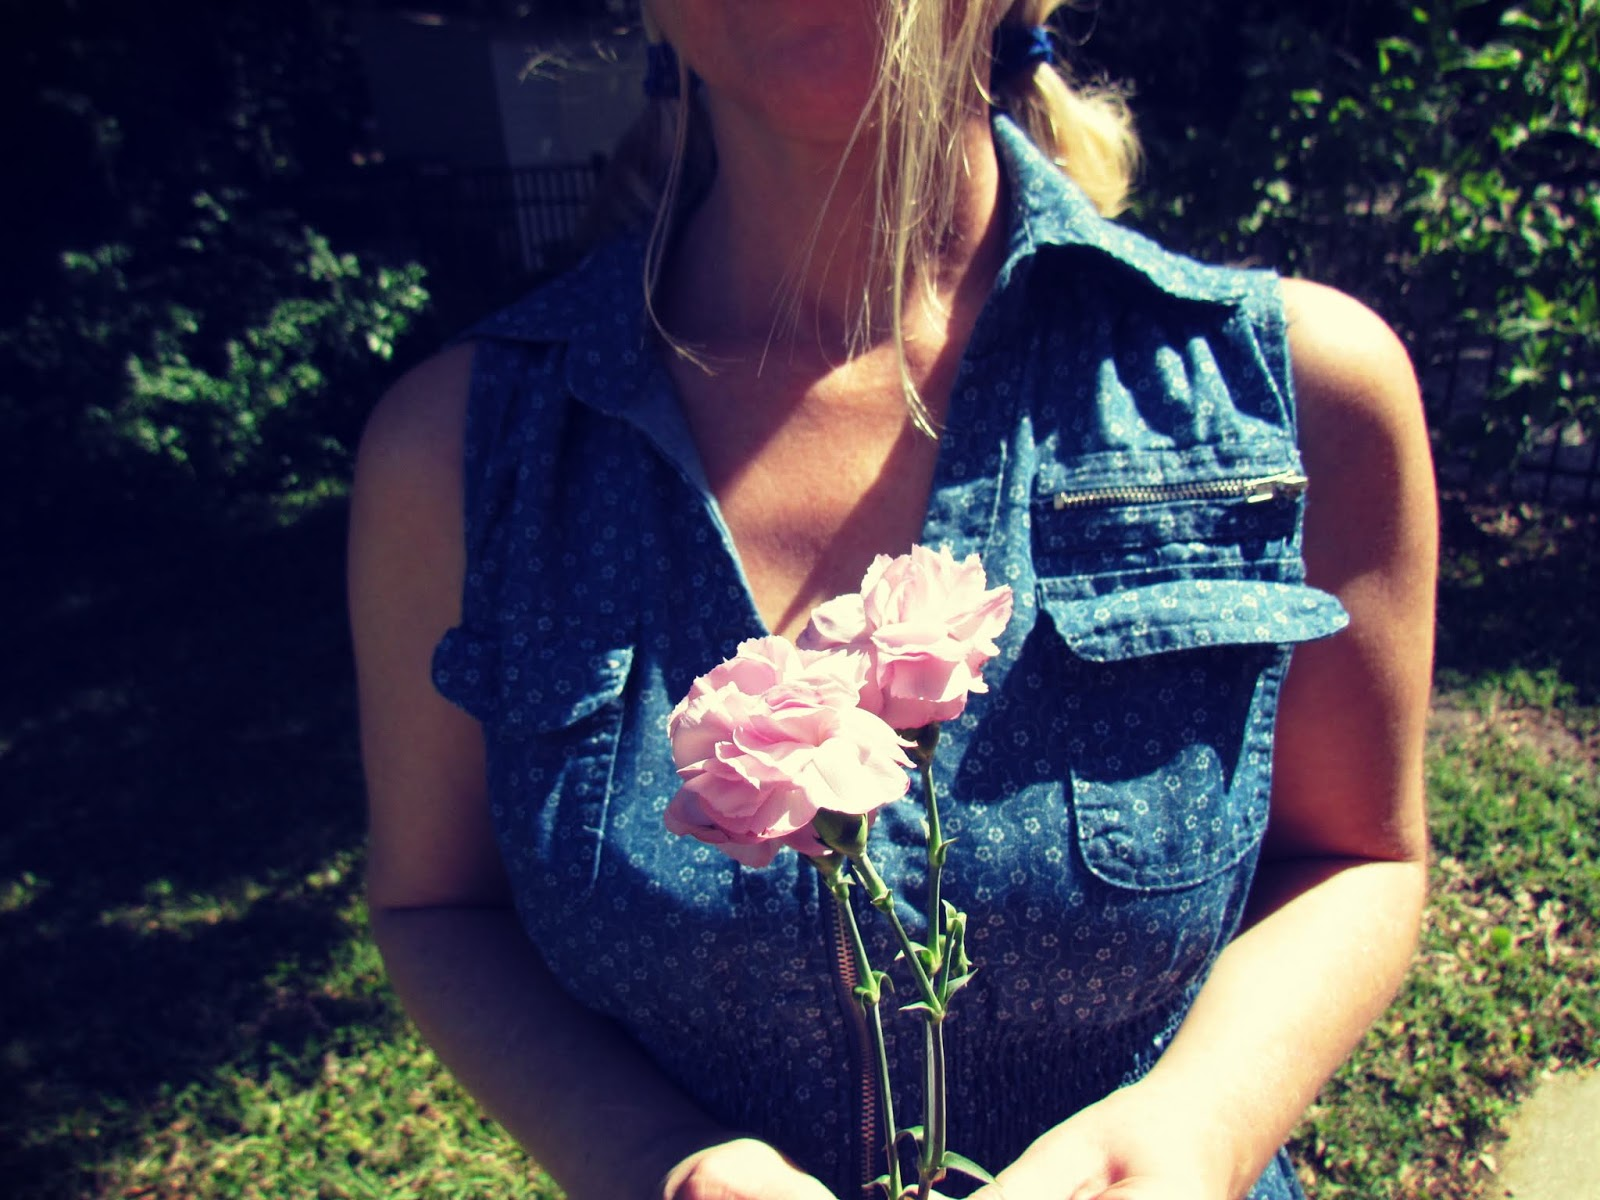 Blonde Woman in Blue Denim Dress with Flowers in a Natural Setting